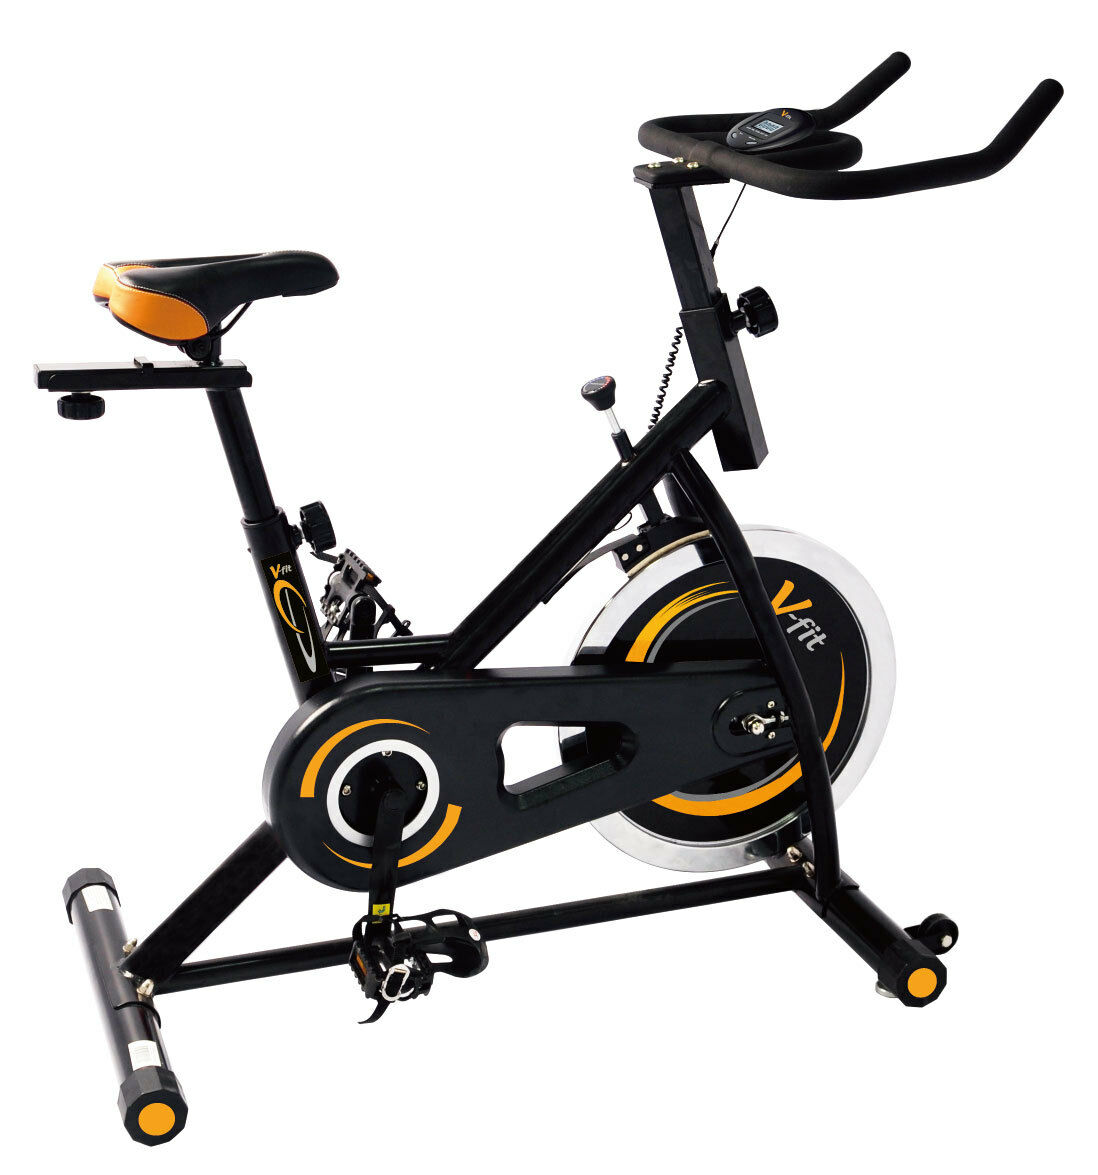 V Fit Atc 16 1 Aerobic Training Cycle Gym Spin Exercise Bike